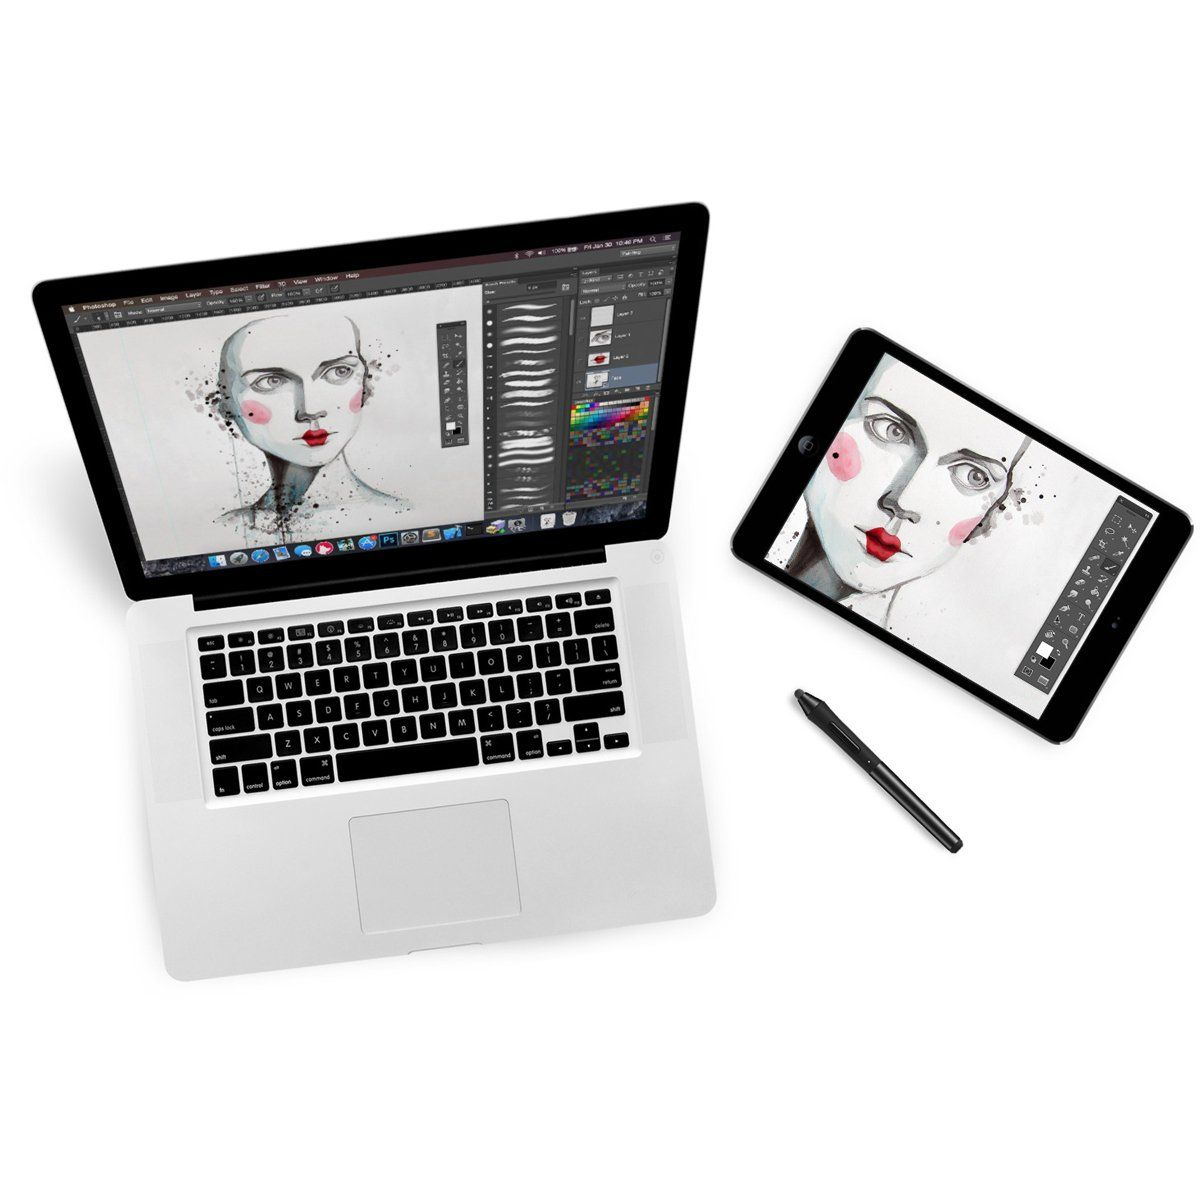 Character Design Ipad App : The best ipad apps for designers adobe capture fontbook